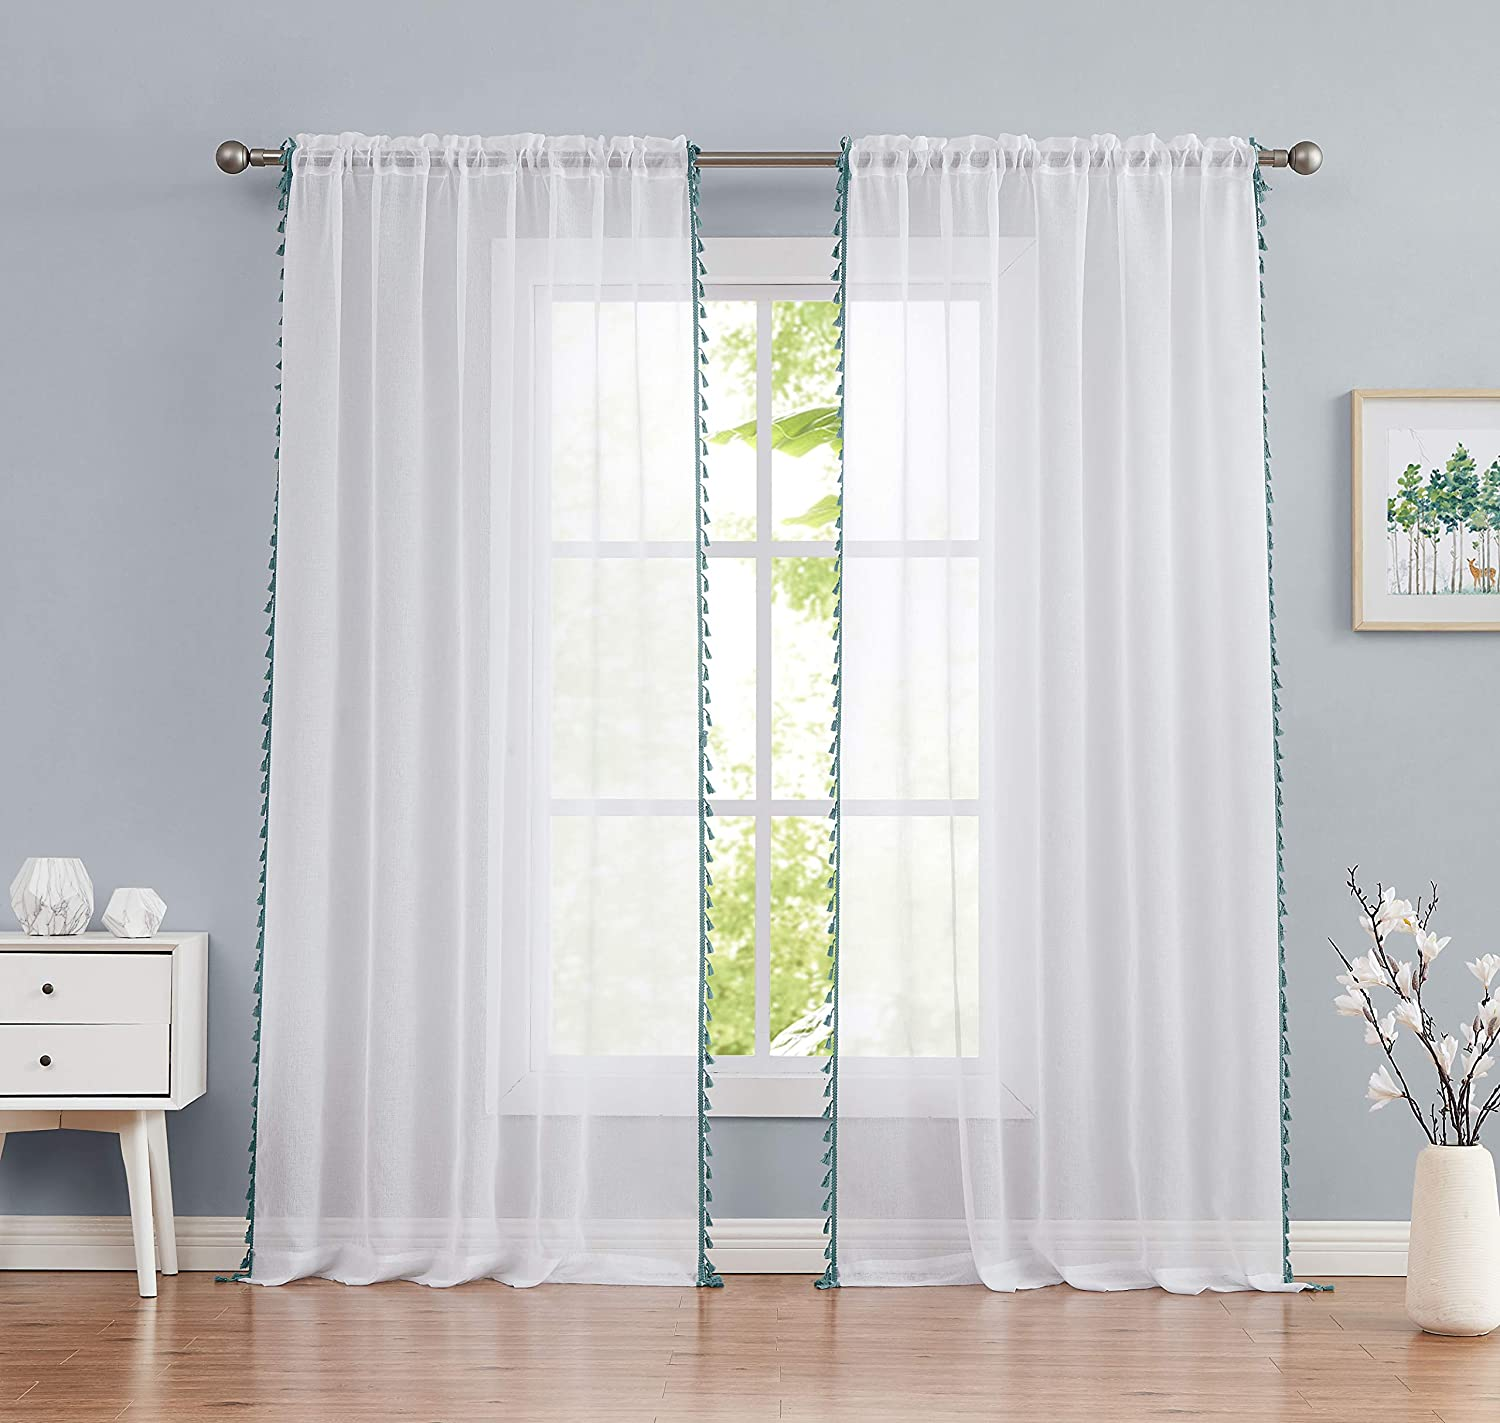 CloverForty Tassels Embellished Sheer Rod Pocket Curtain Panel Pair, 54x96, White/Teal, 2 Piece